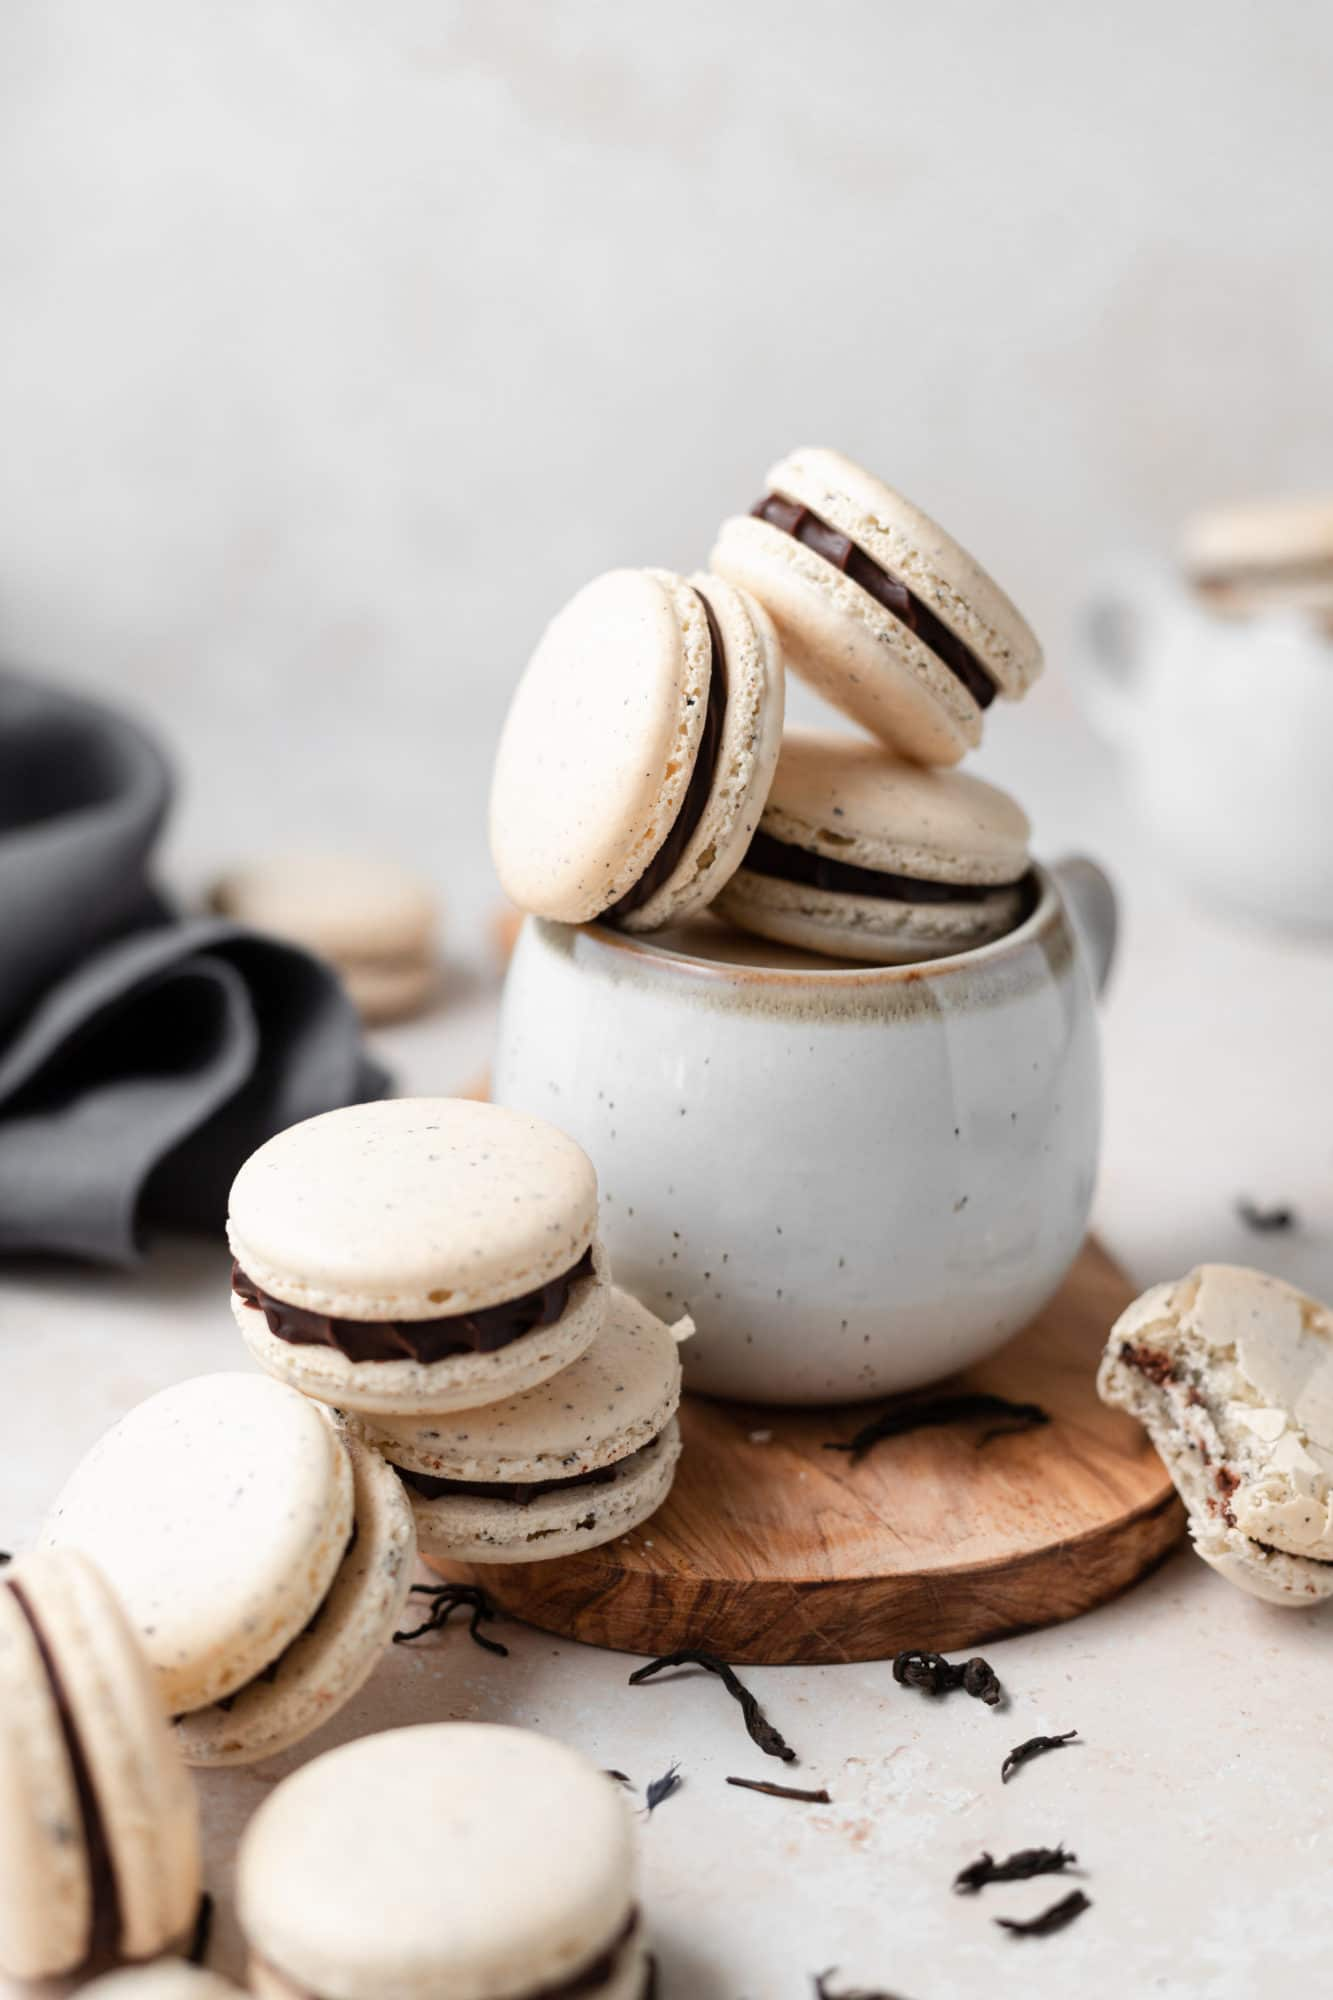 macarons stacked on each other in a mug